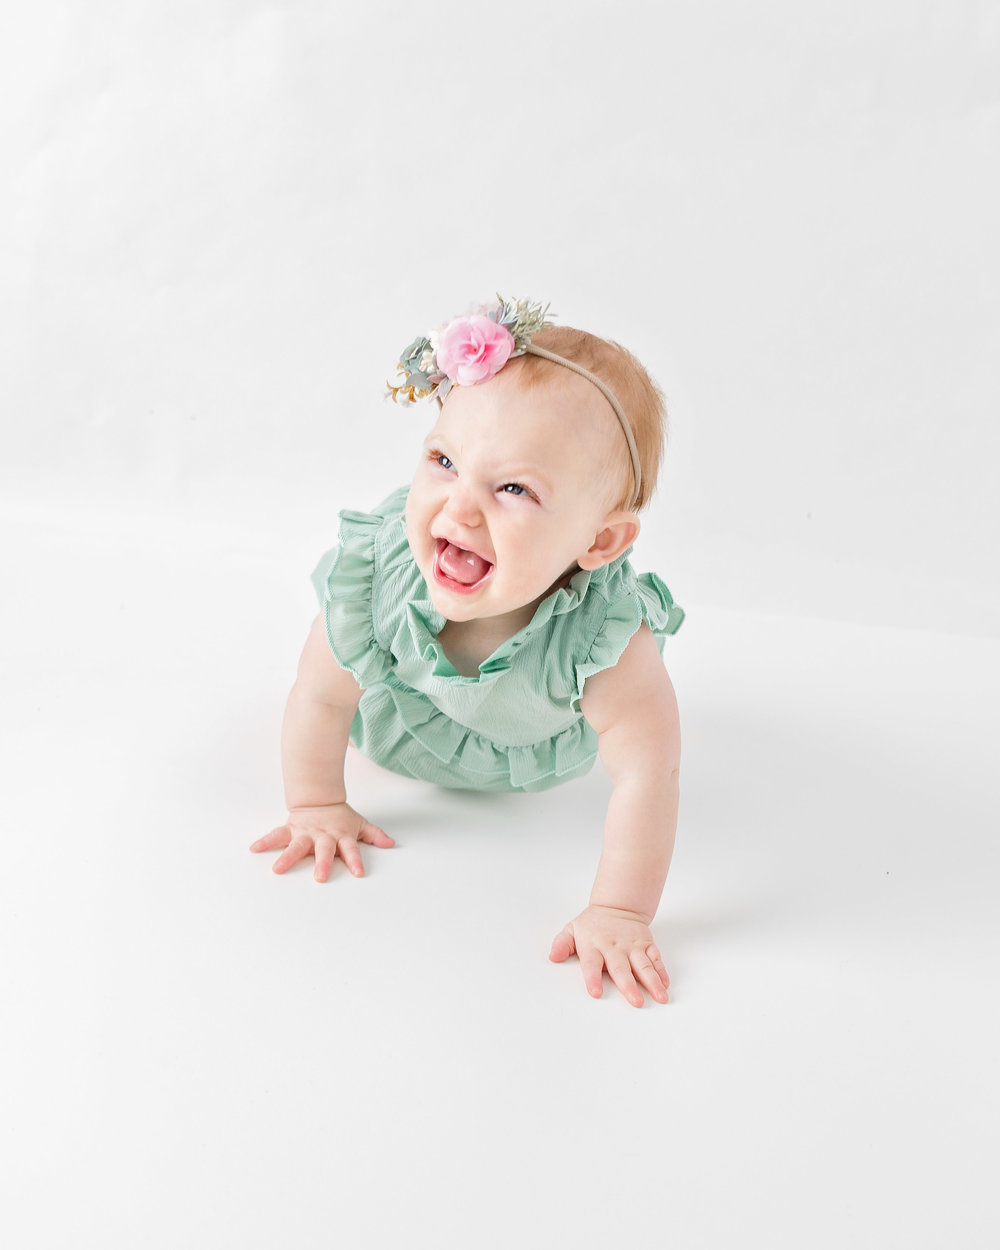 baby-girl-nine-month-photos-milestone-photography-infant-pictures.jpg